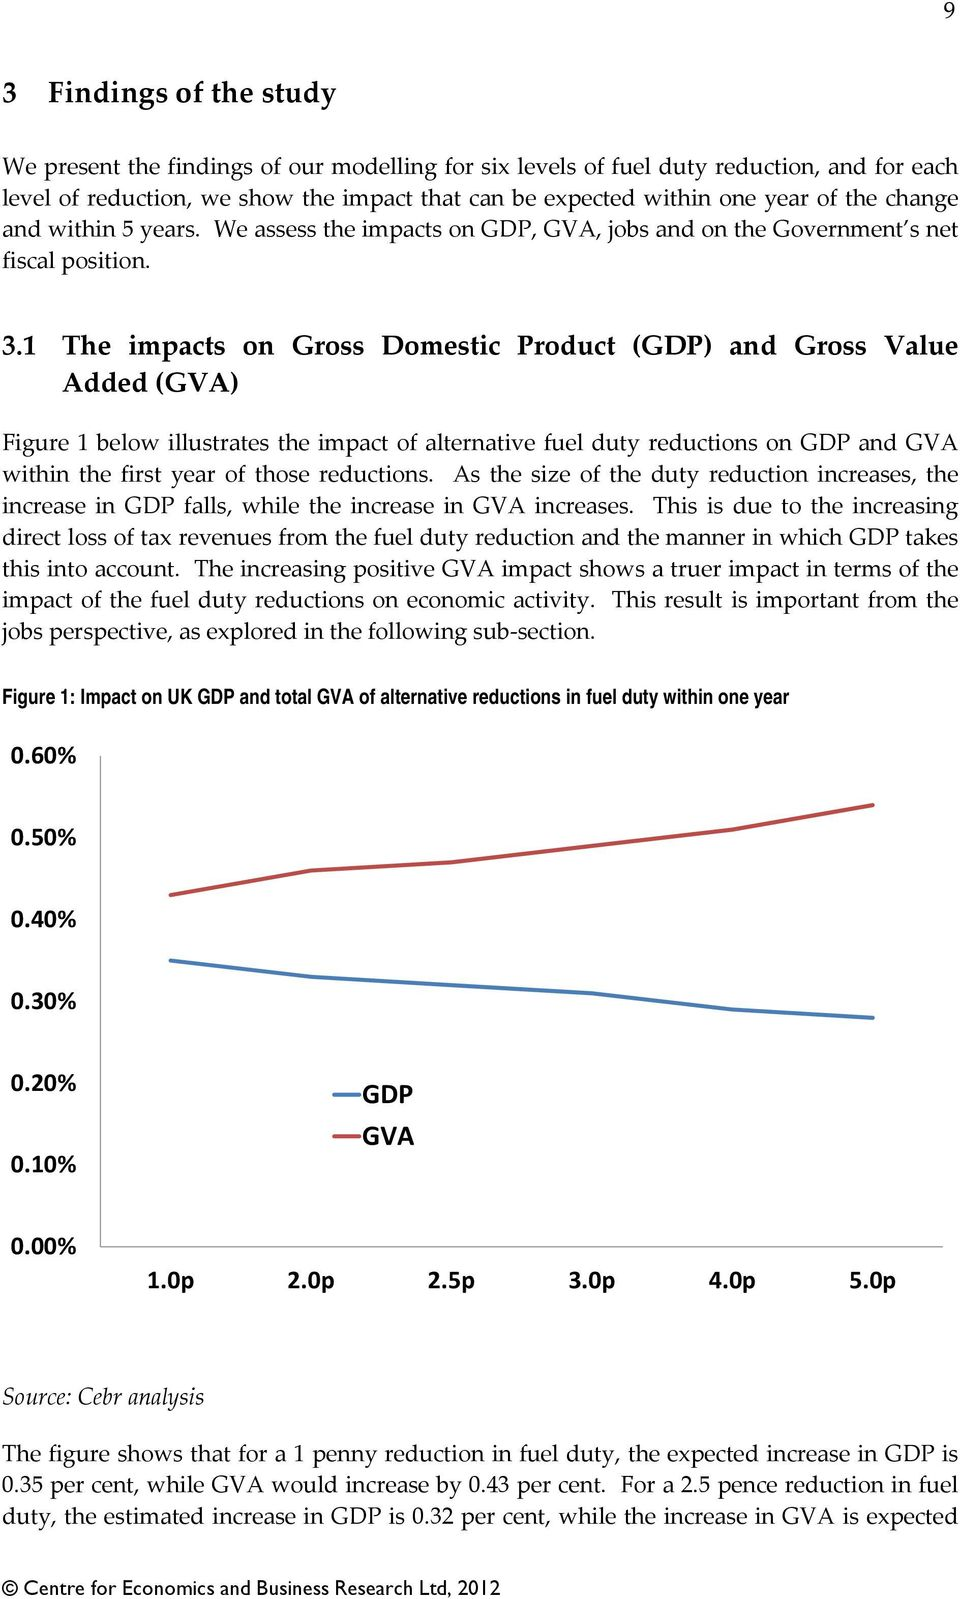 1 The impacts on Gross Domestic Product (GDP) and Gross Value Added (GVA) Figure 1 below illustrates the impact of alternative fuel duty reductions on GDP and GVA within the first year of those